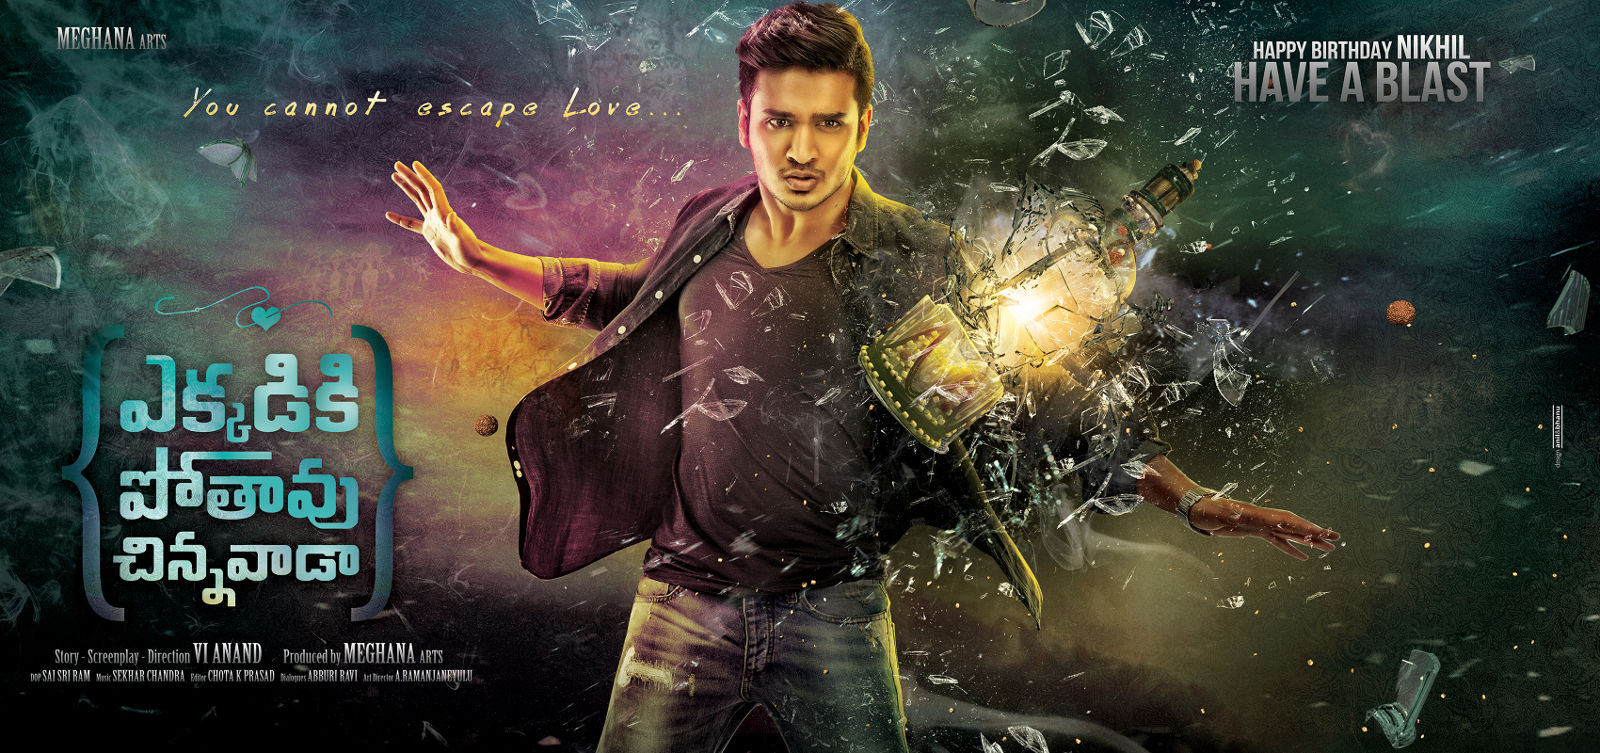 Movies 2016 Posters: Nikhil Siddharth's Ekkadiki Potavu Chinnavada First Look